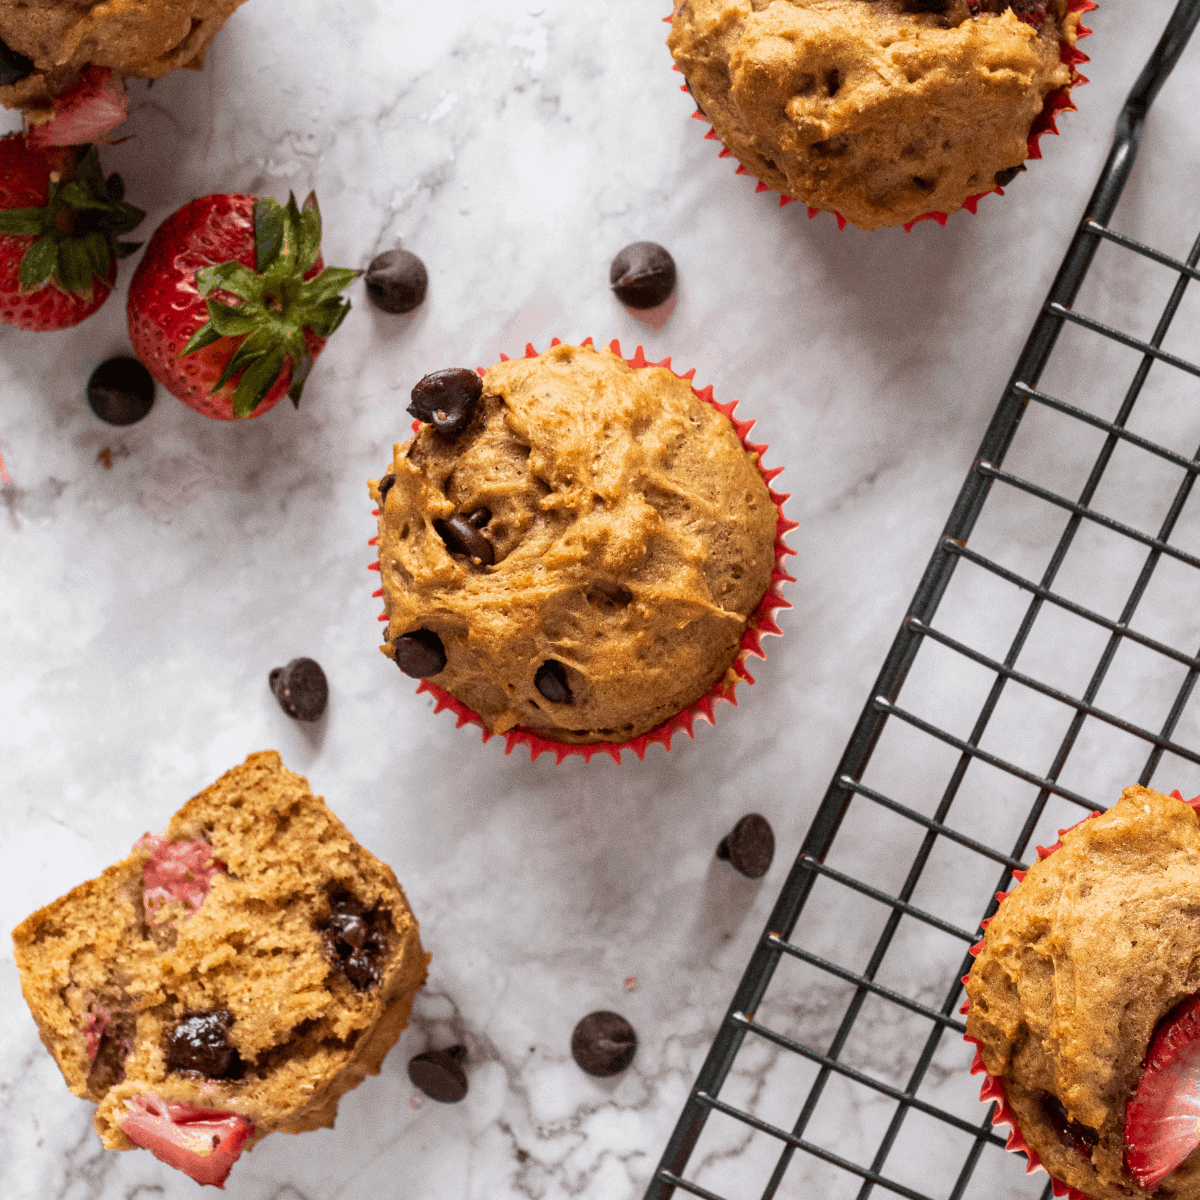 healthy Strawberry chocolate chip muffins next to strawberries.